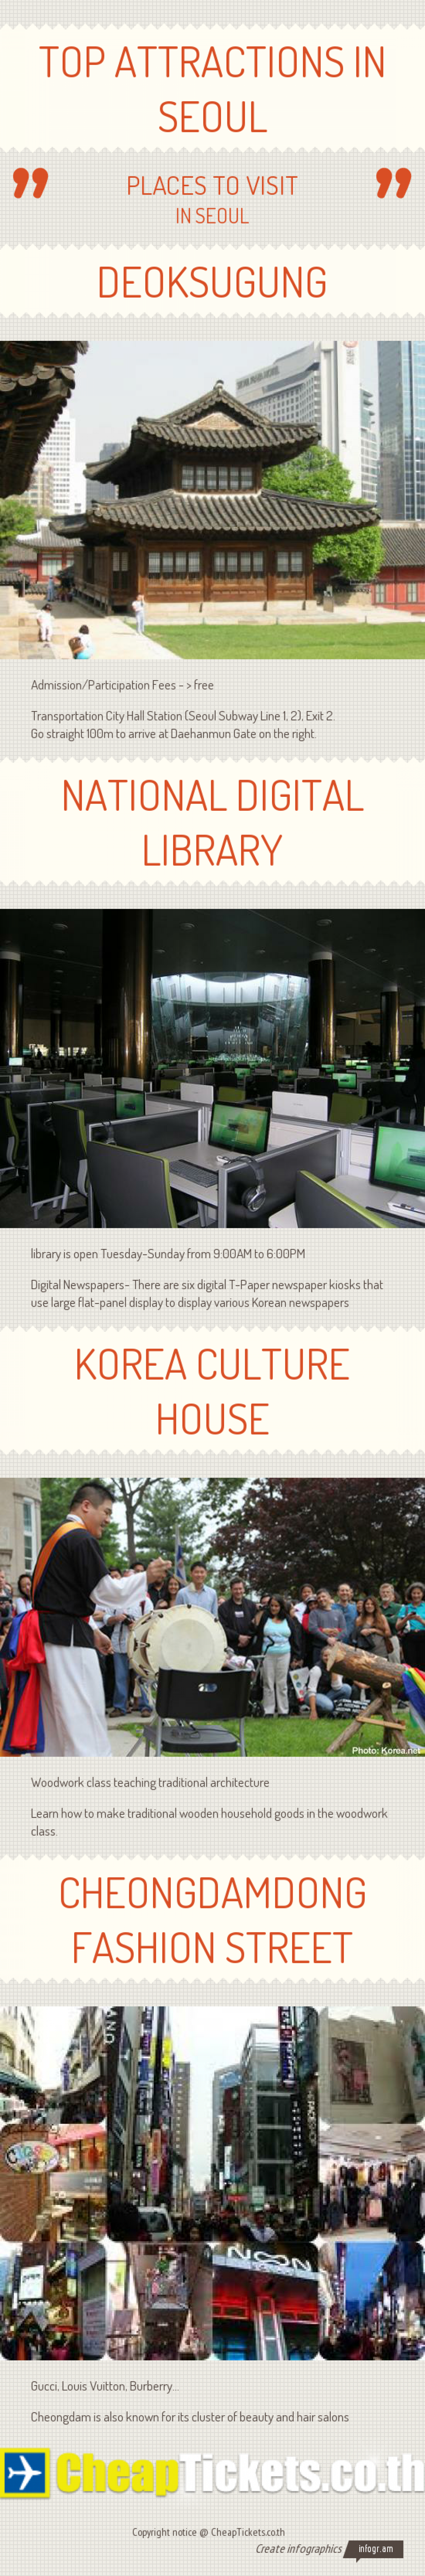 Top attractions in Seoul Infographic